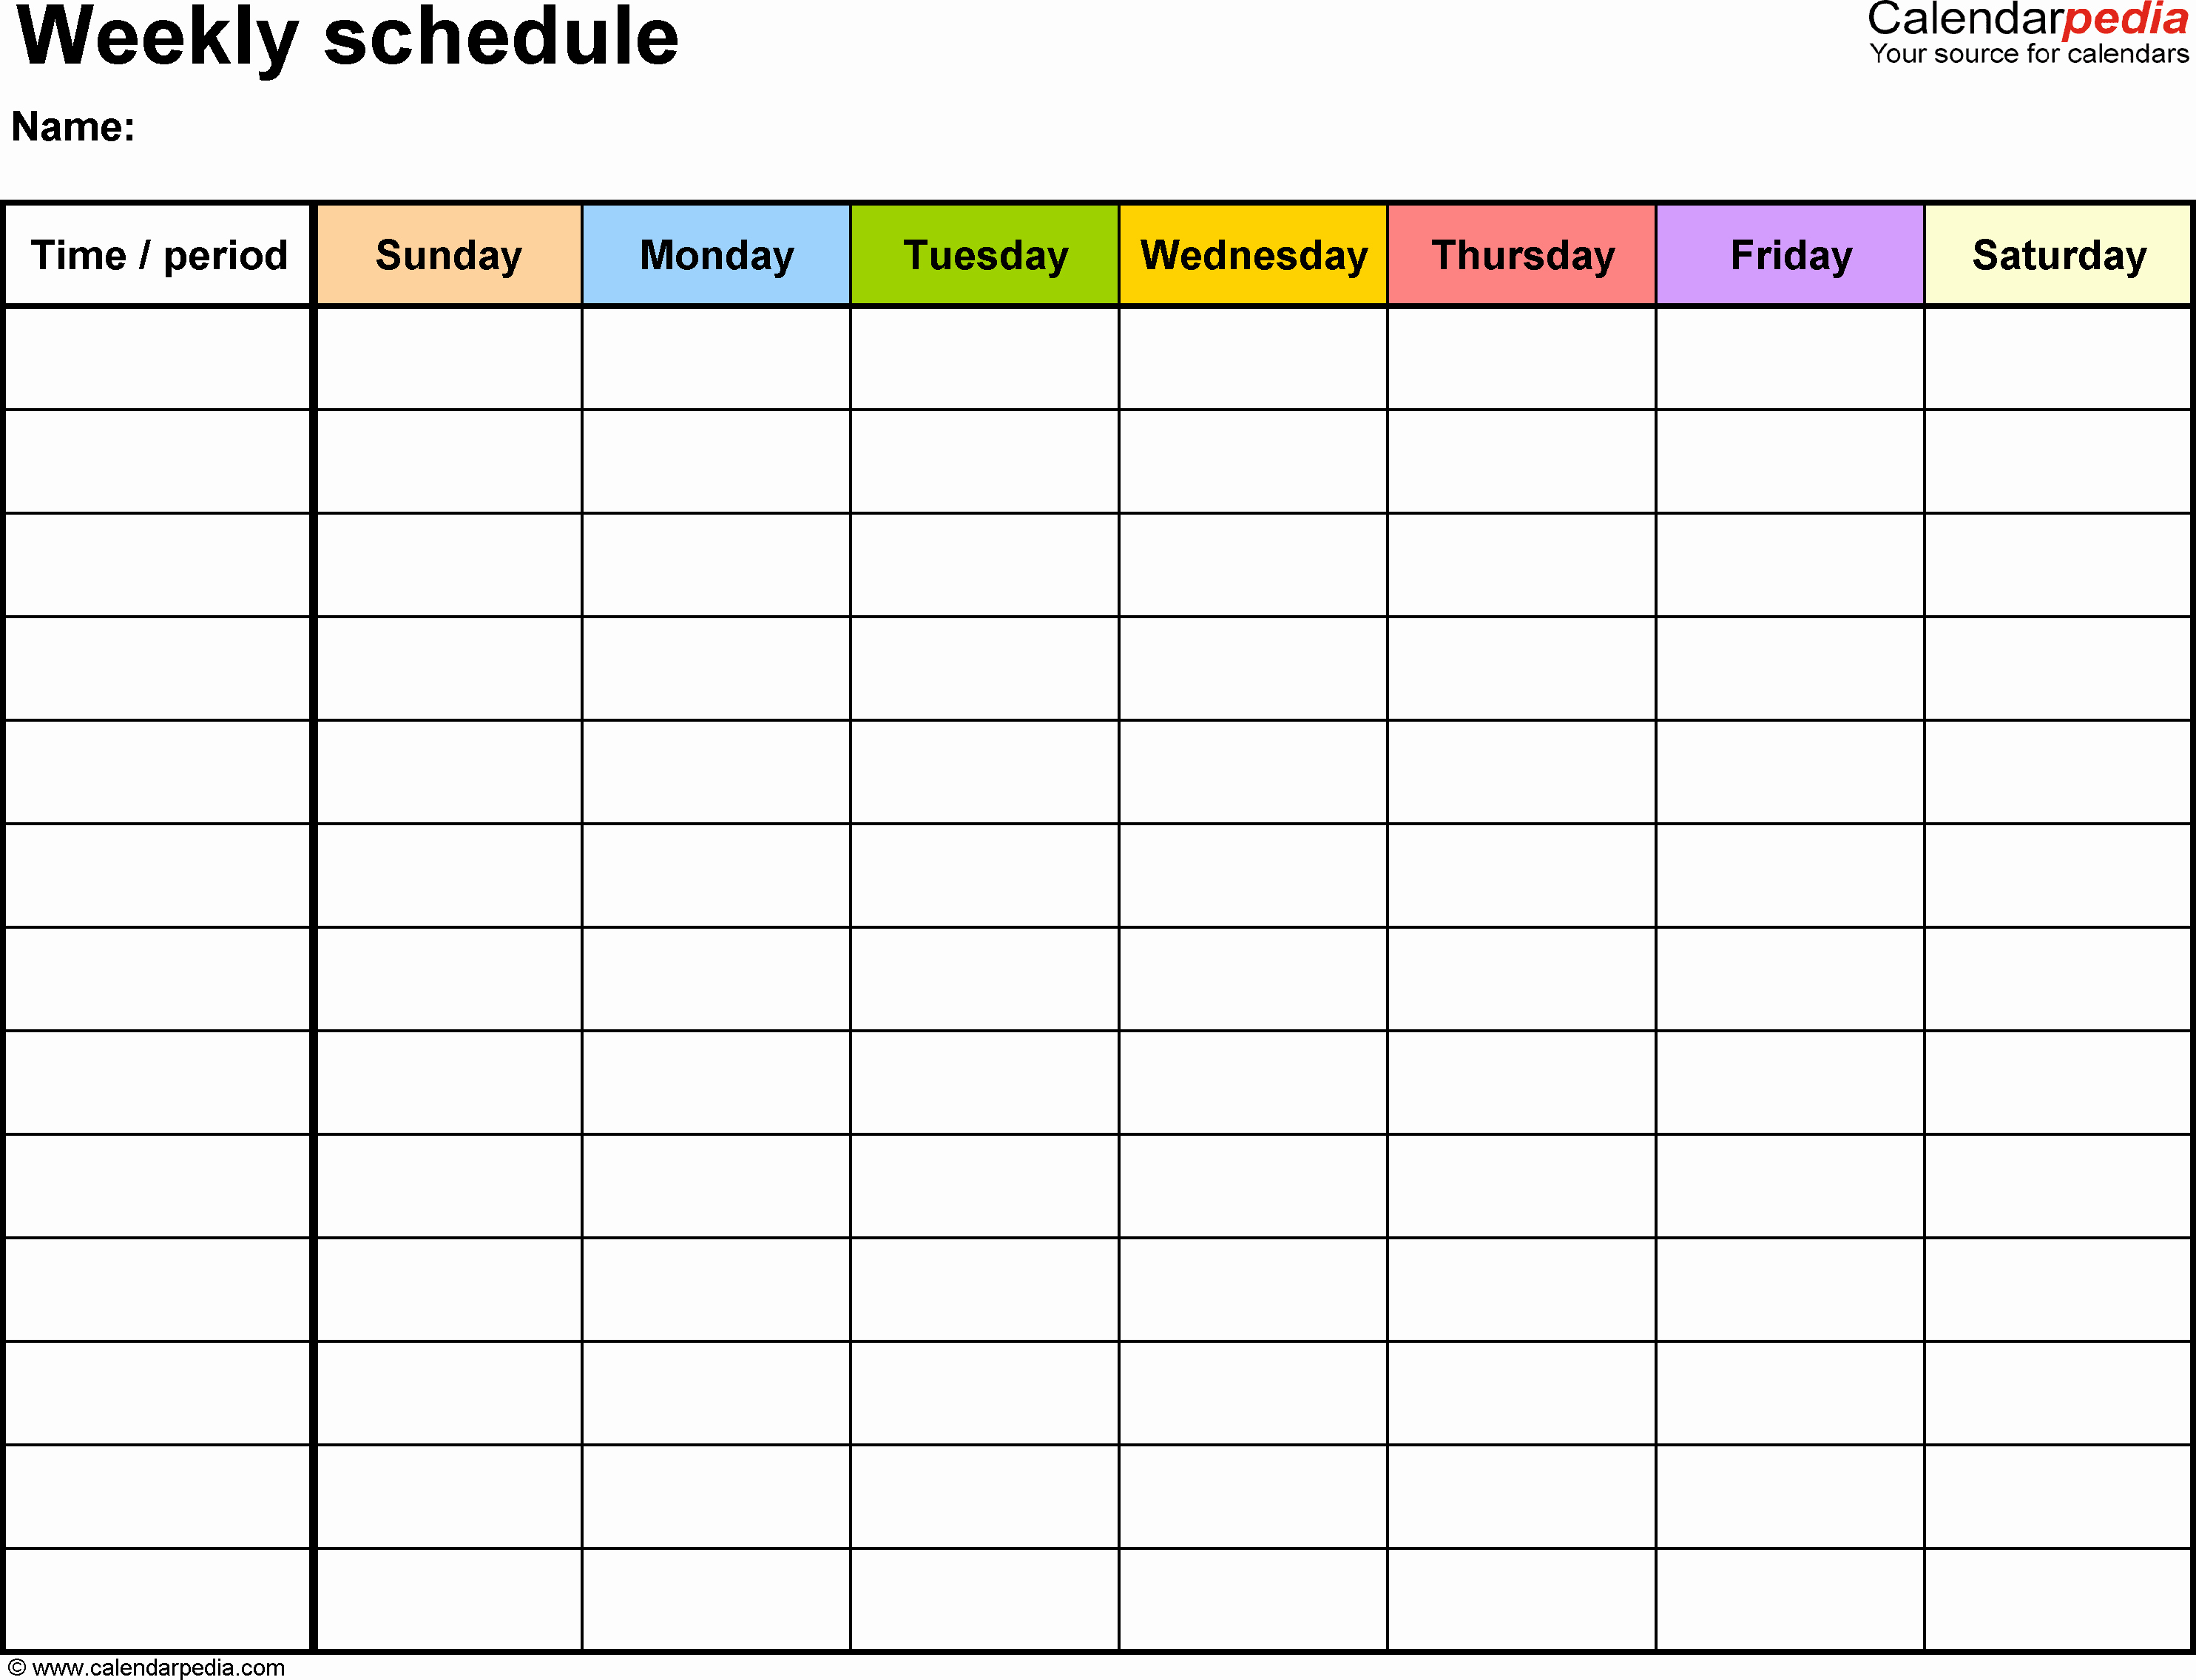 Weekly Schedule with Times Template Awesome Free Weekly Schedule Templates for Excel 18 Templates